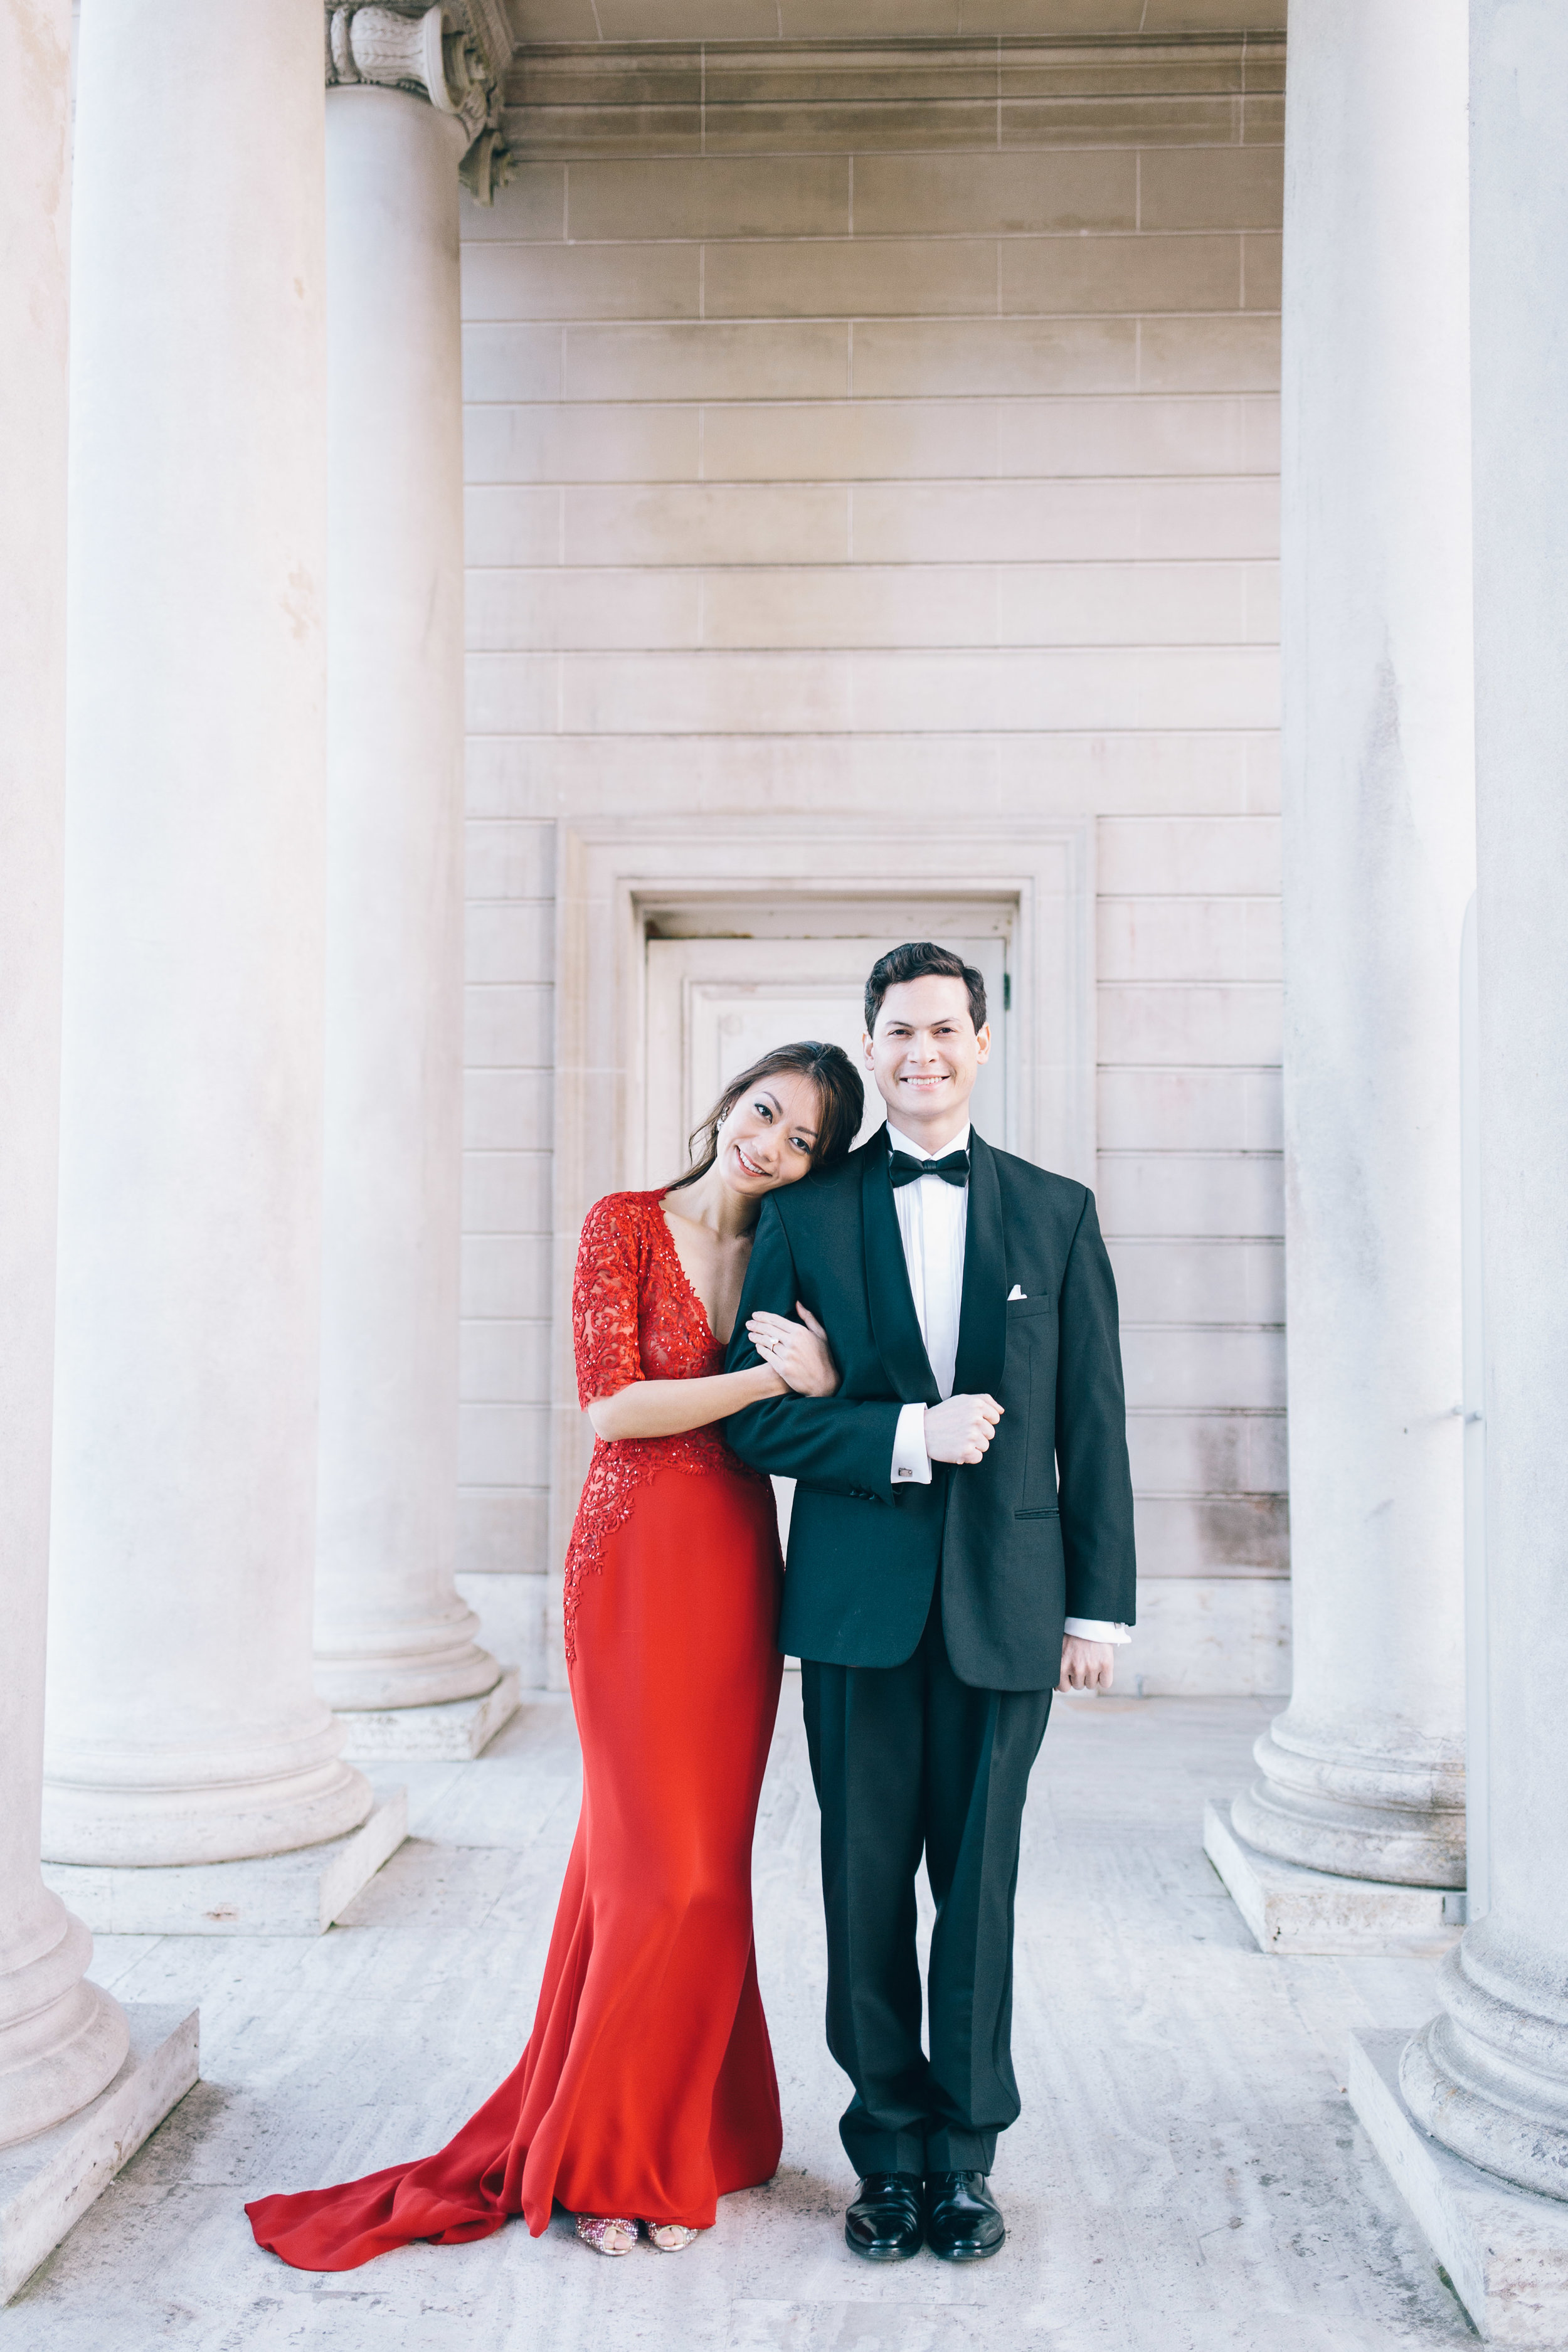 Legion of Honor Engagement Photos by JBJ Pictures - Best Locations for Engagement Photos in SF (7).jpg